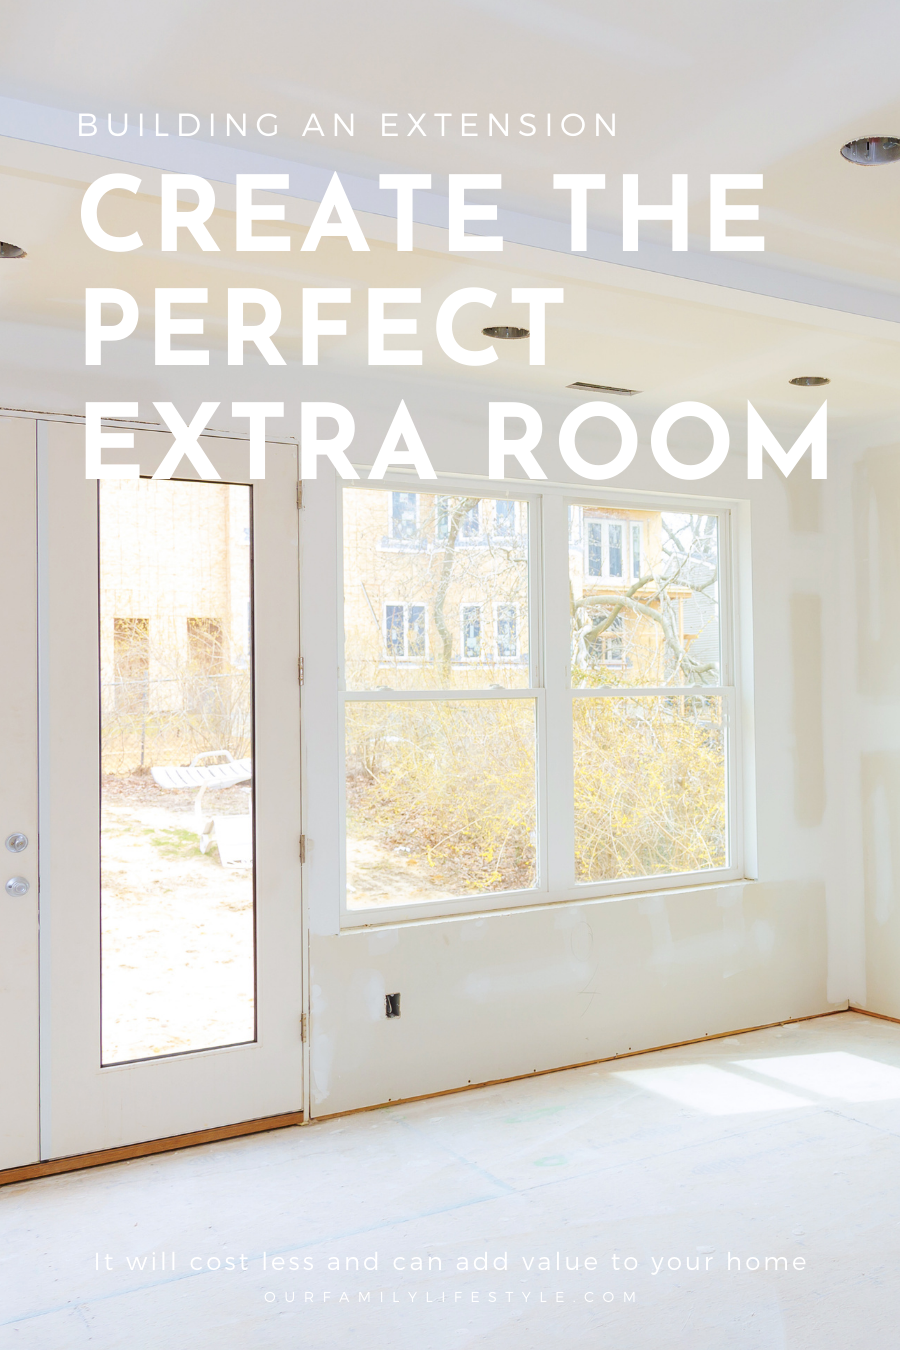 Building an Extension: Create the Perfect Extra Room